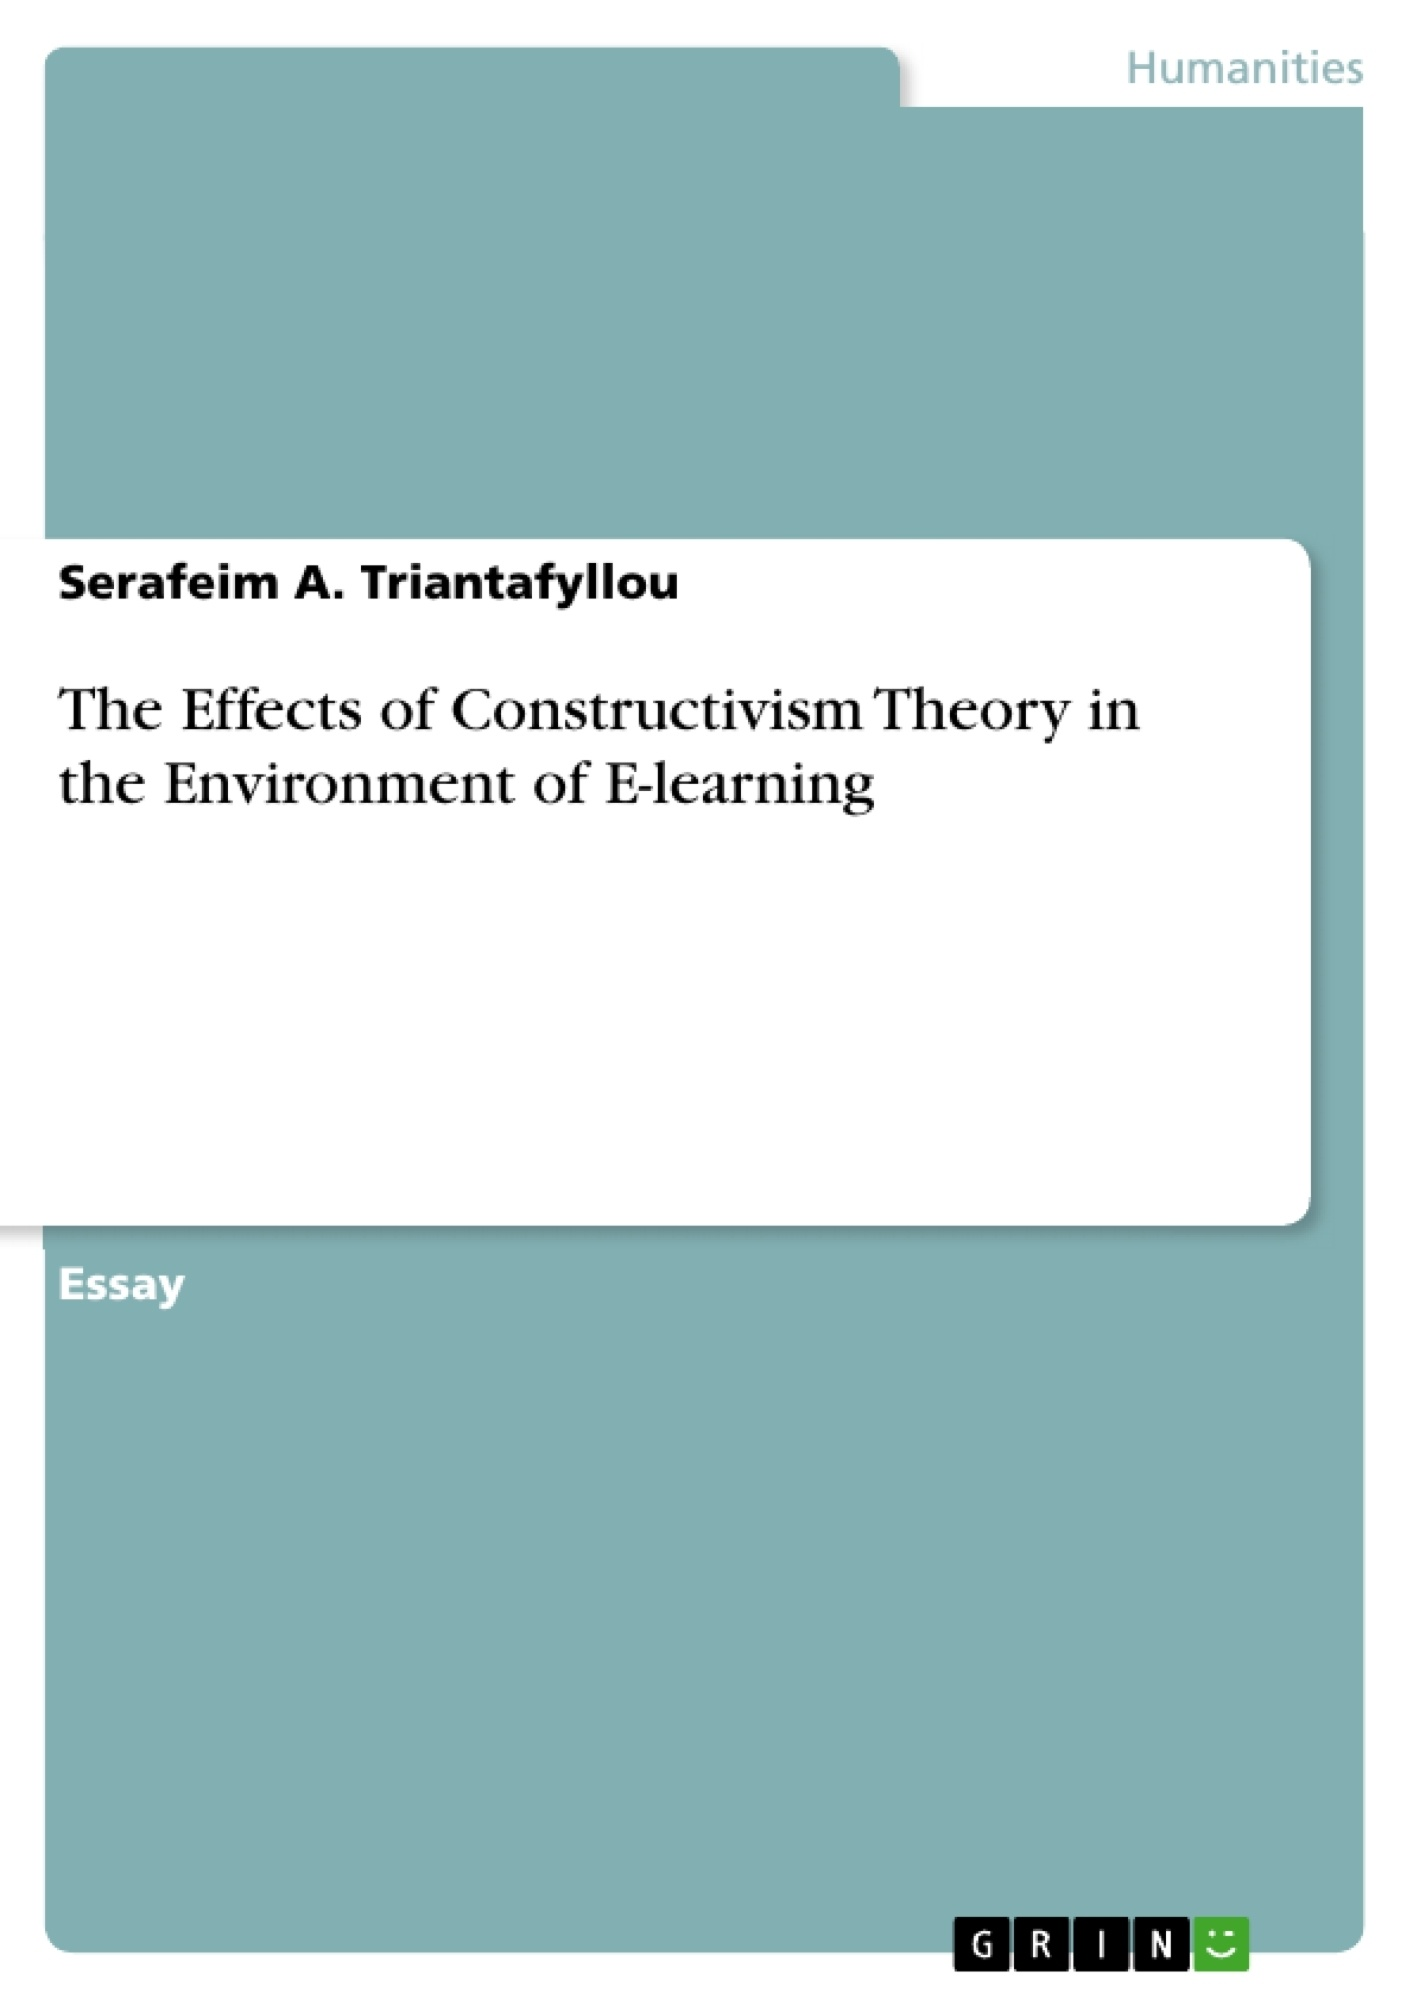 Title: The Effects of Constructivism Theory in the Environment of E-learning